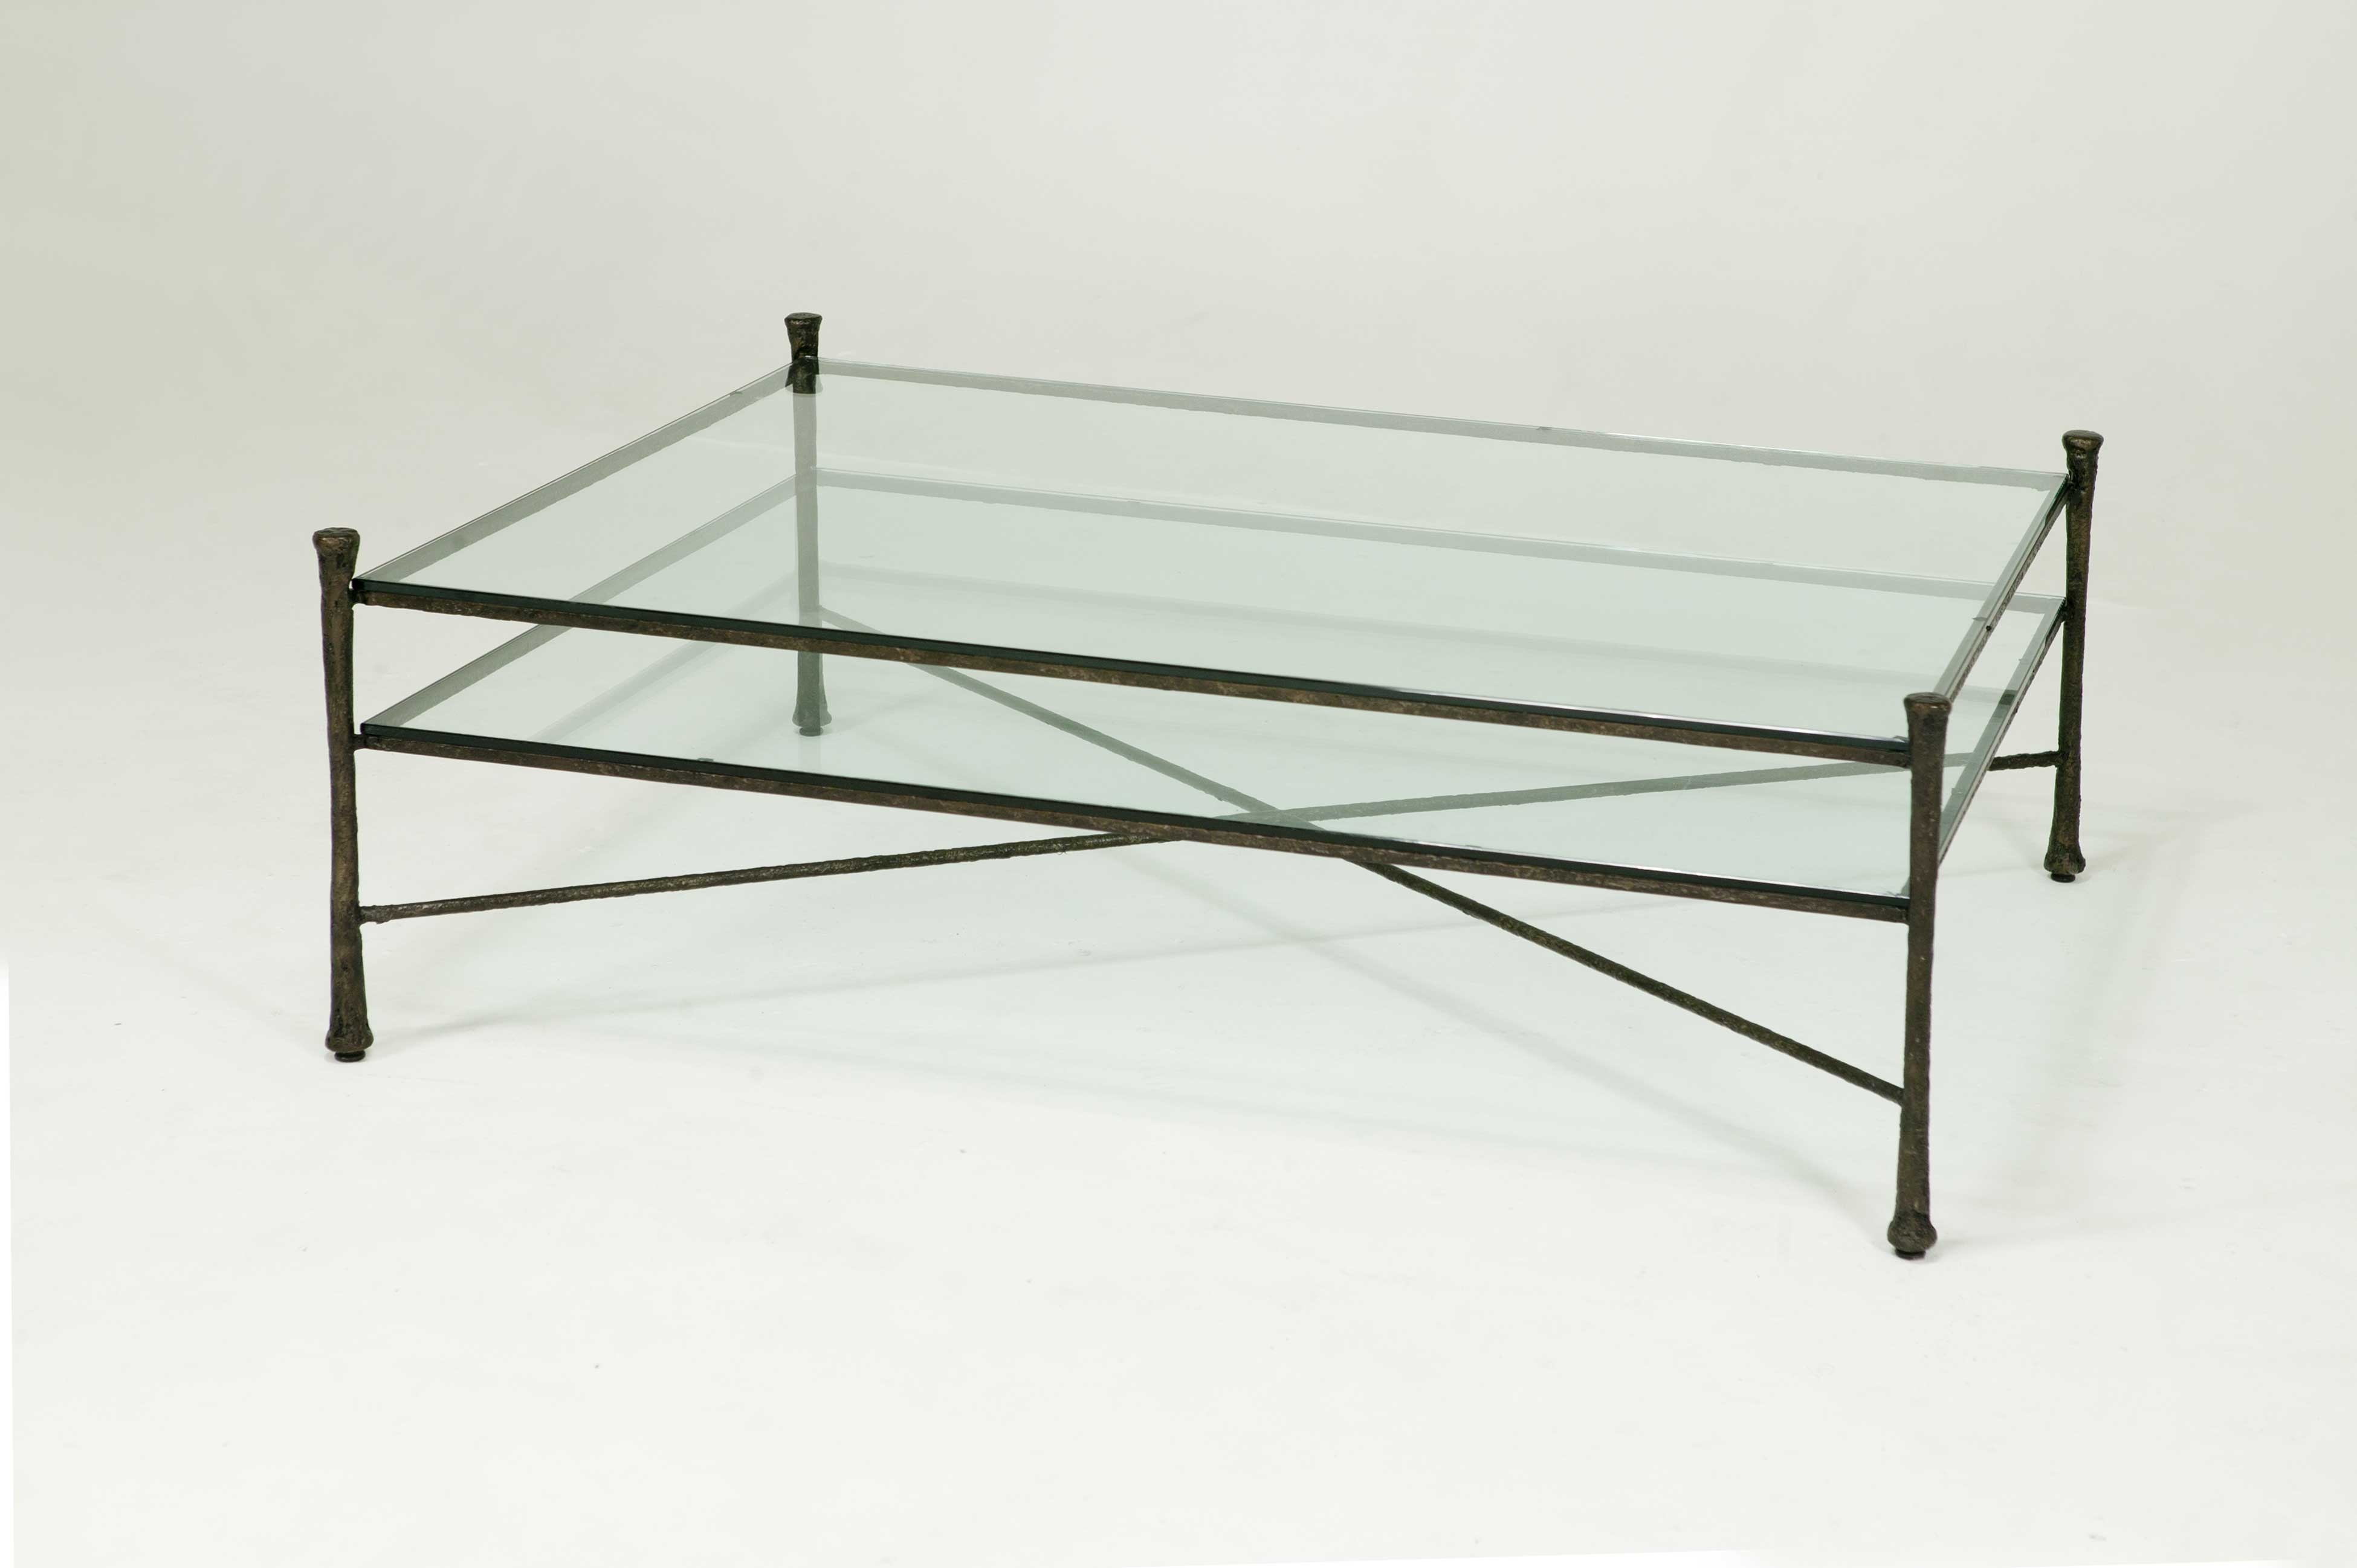 glass top coffee table design plans photo - 6